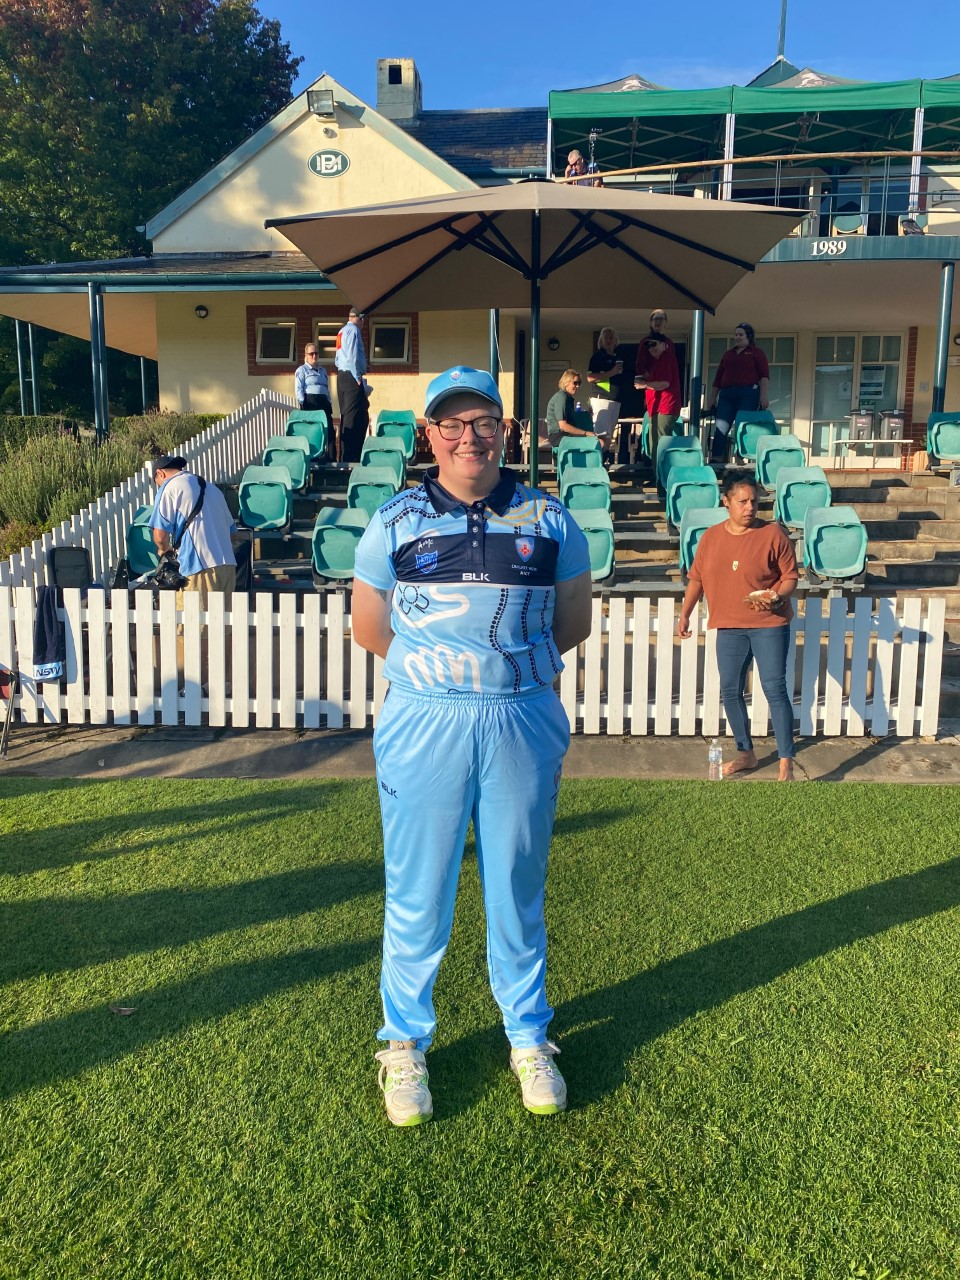 Taylor Ling stands on grass proudly in cricket uniform